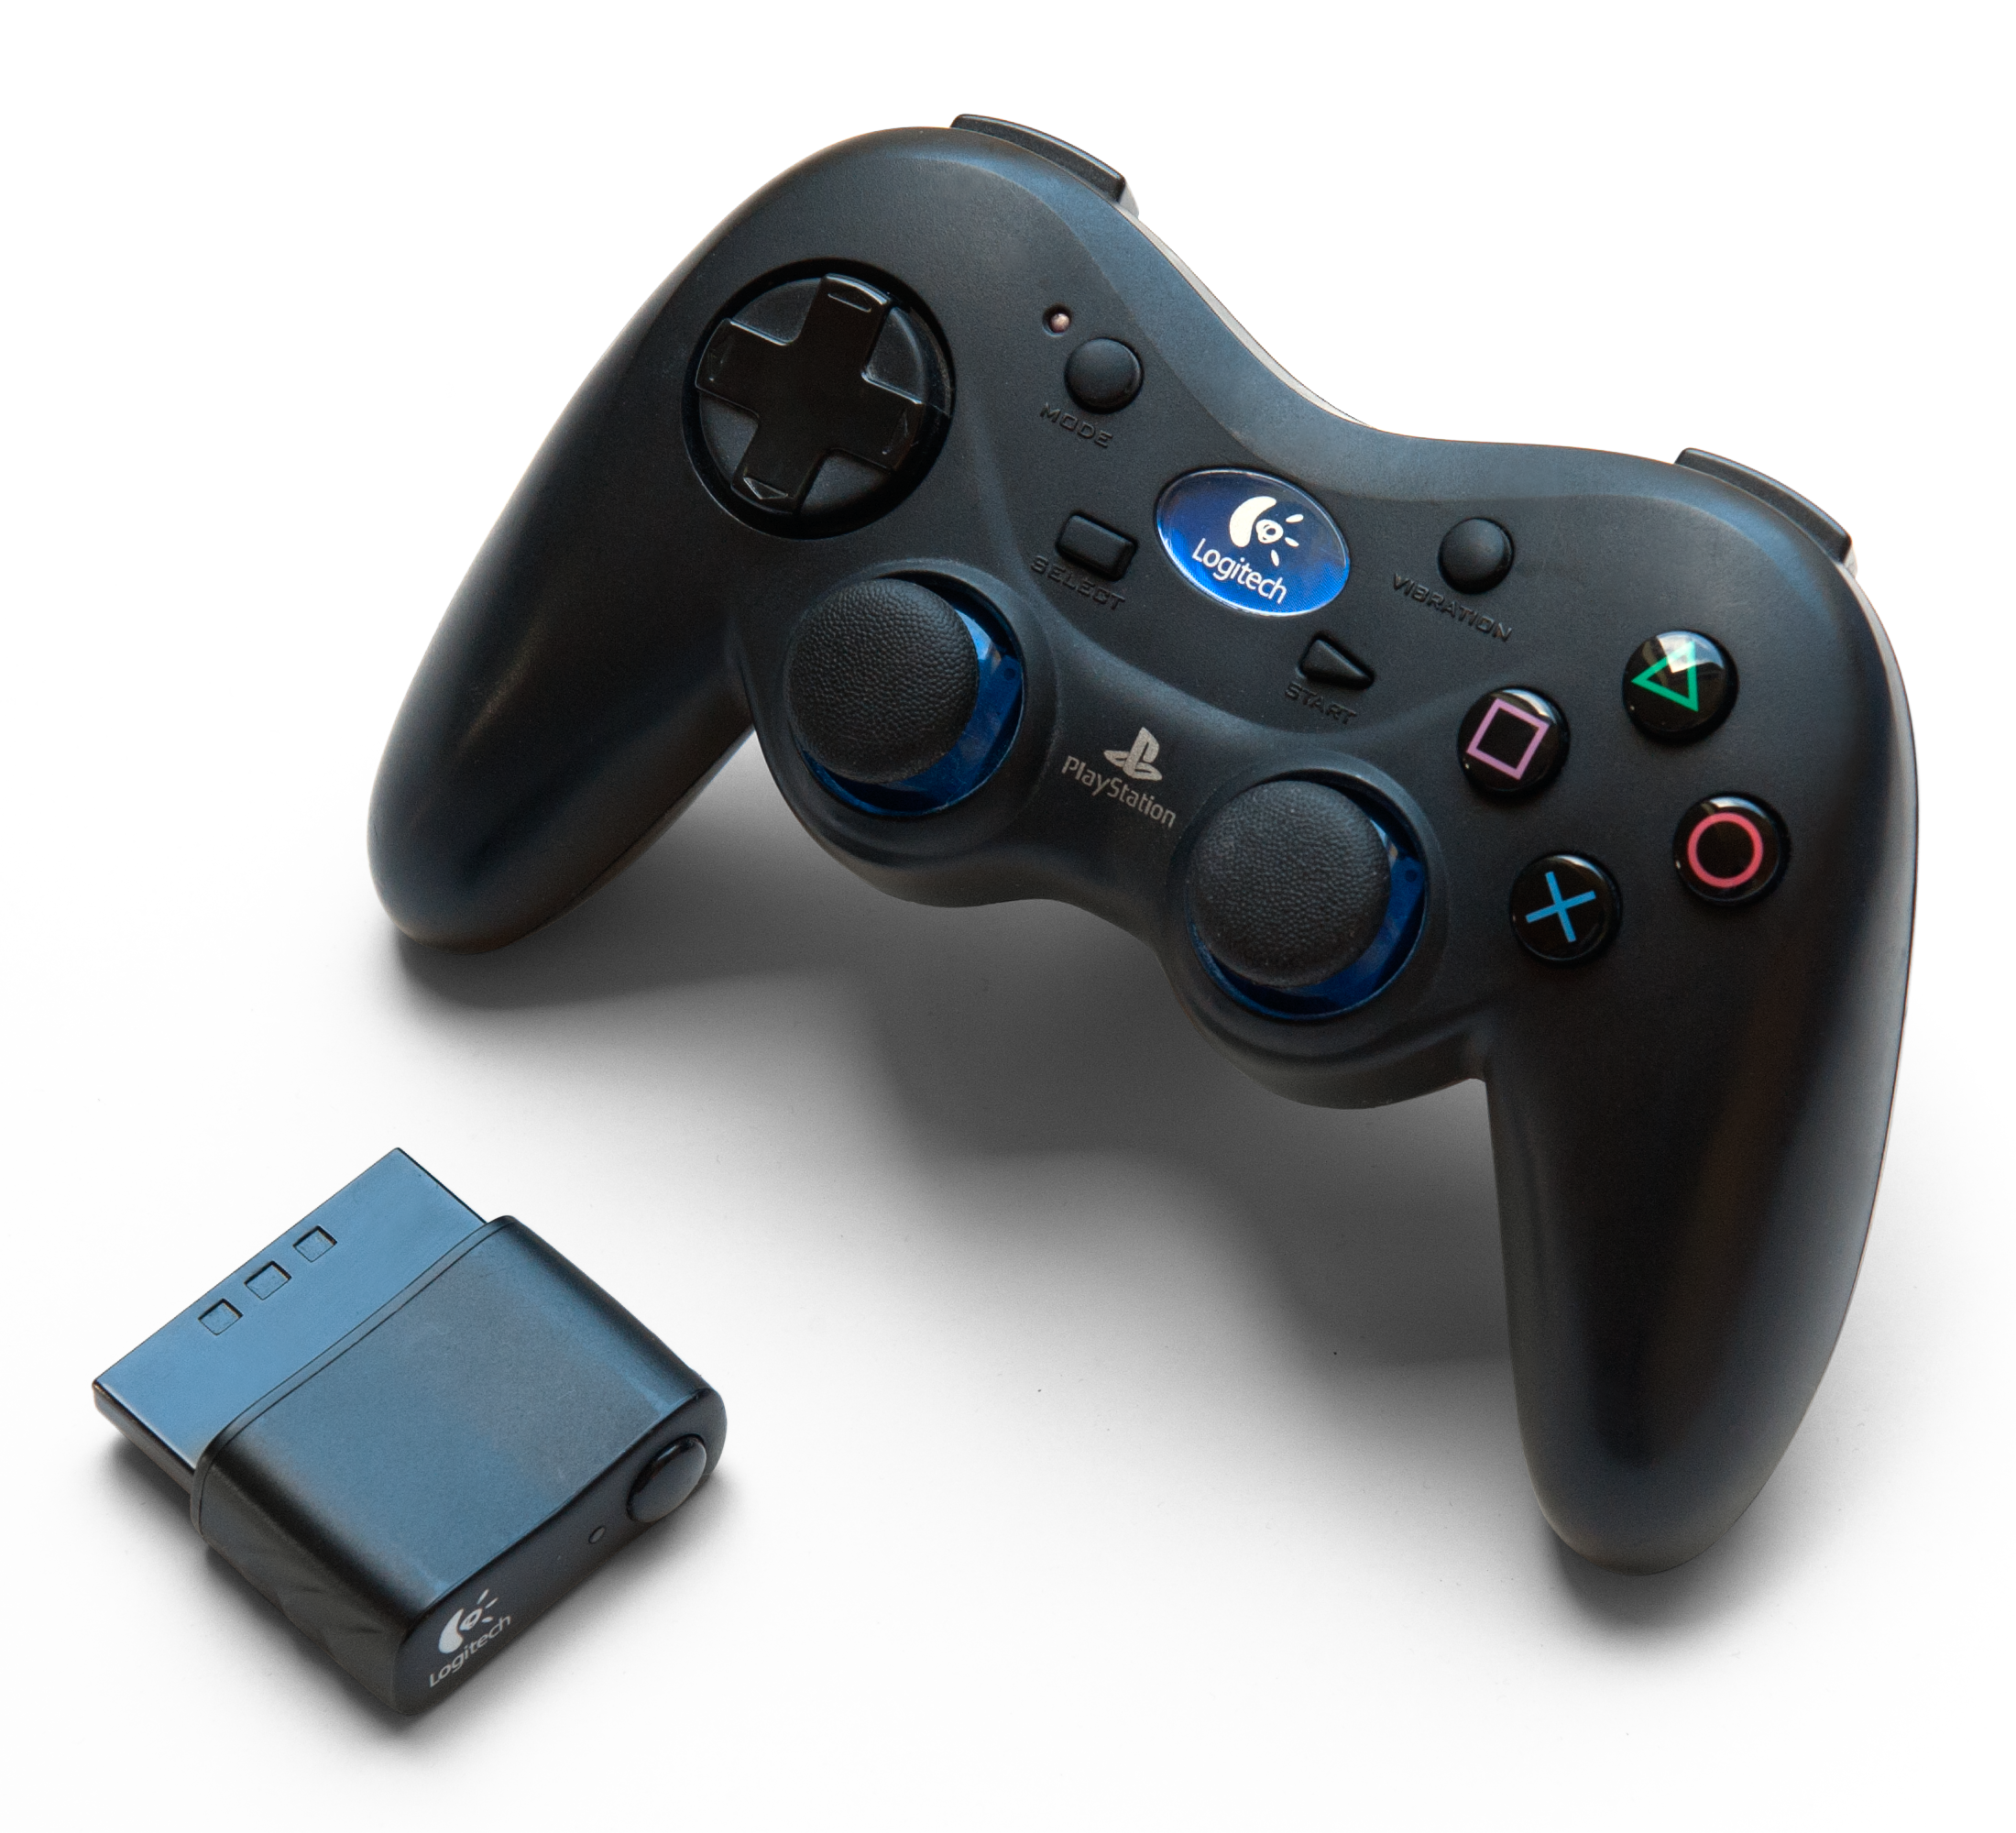 File:Logitech Cordless Action Controller + Dongle.png ...